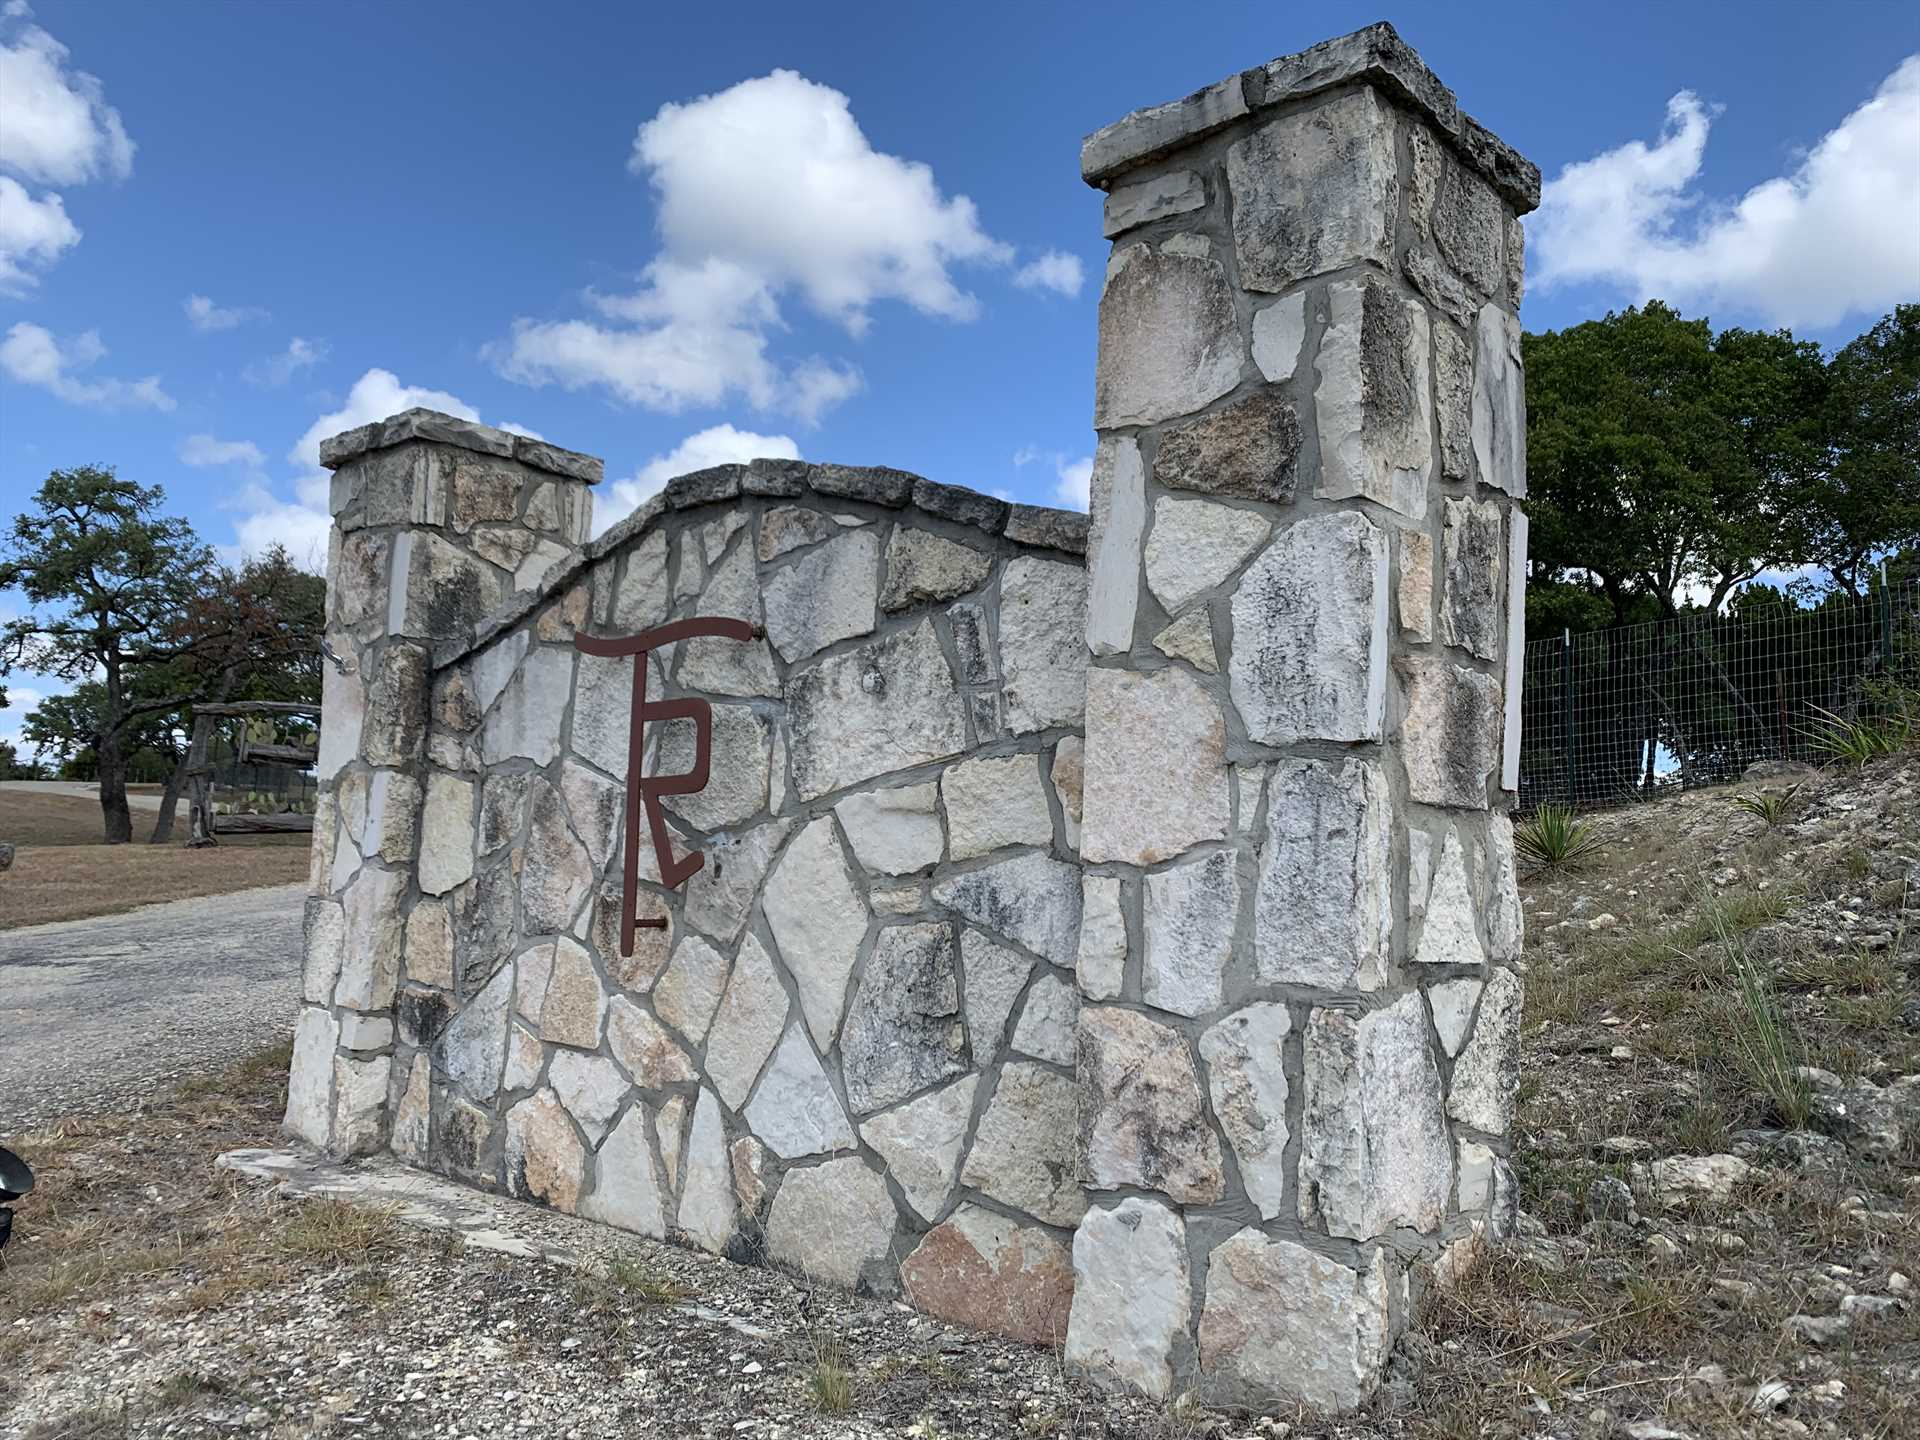 The Tabasco Ranch stone gate is your signal that an amazing Texas Hill Country adventure is about to begin.